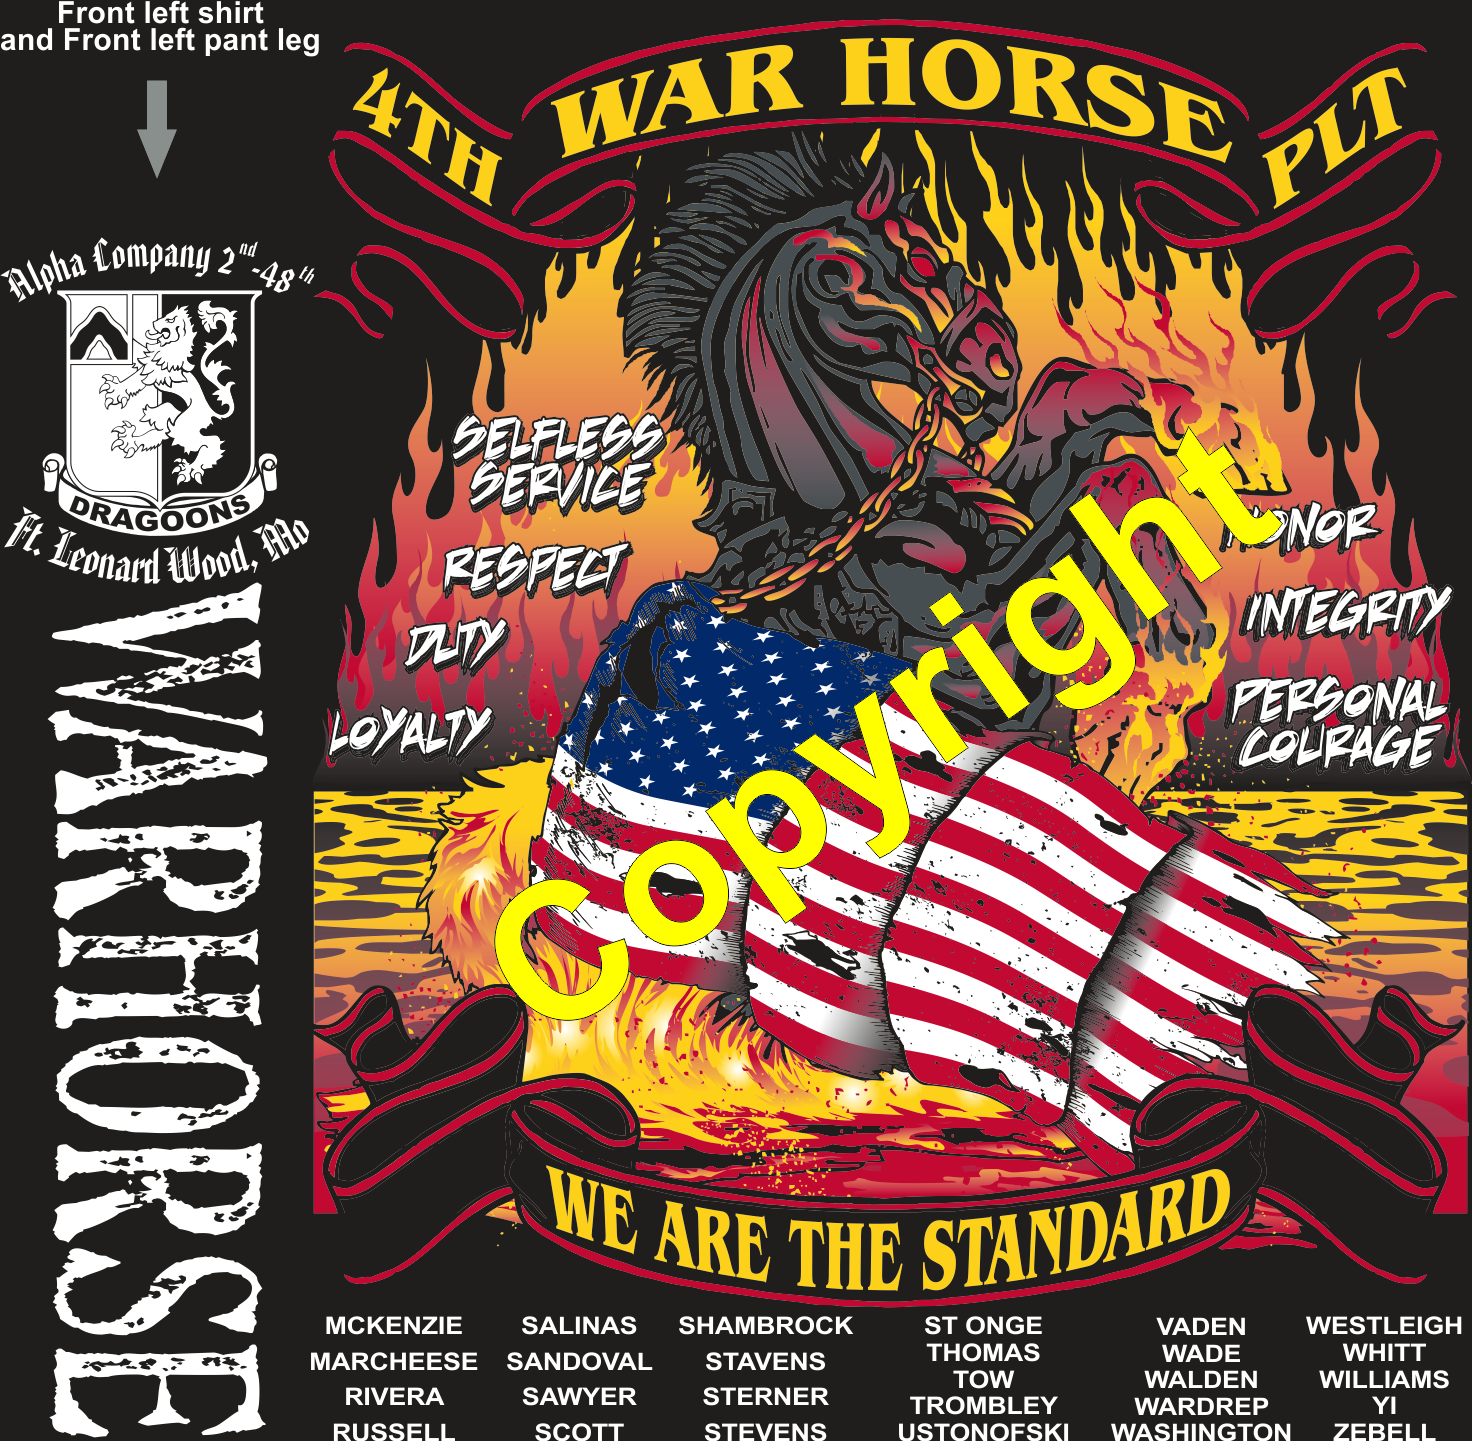 ALPHA 2-48 WAR HORSE GRADUATING DAY 5-17-2018 digital